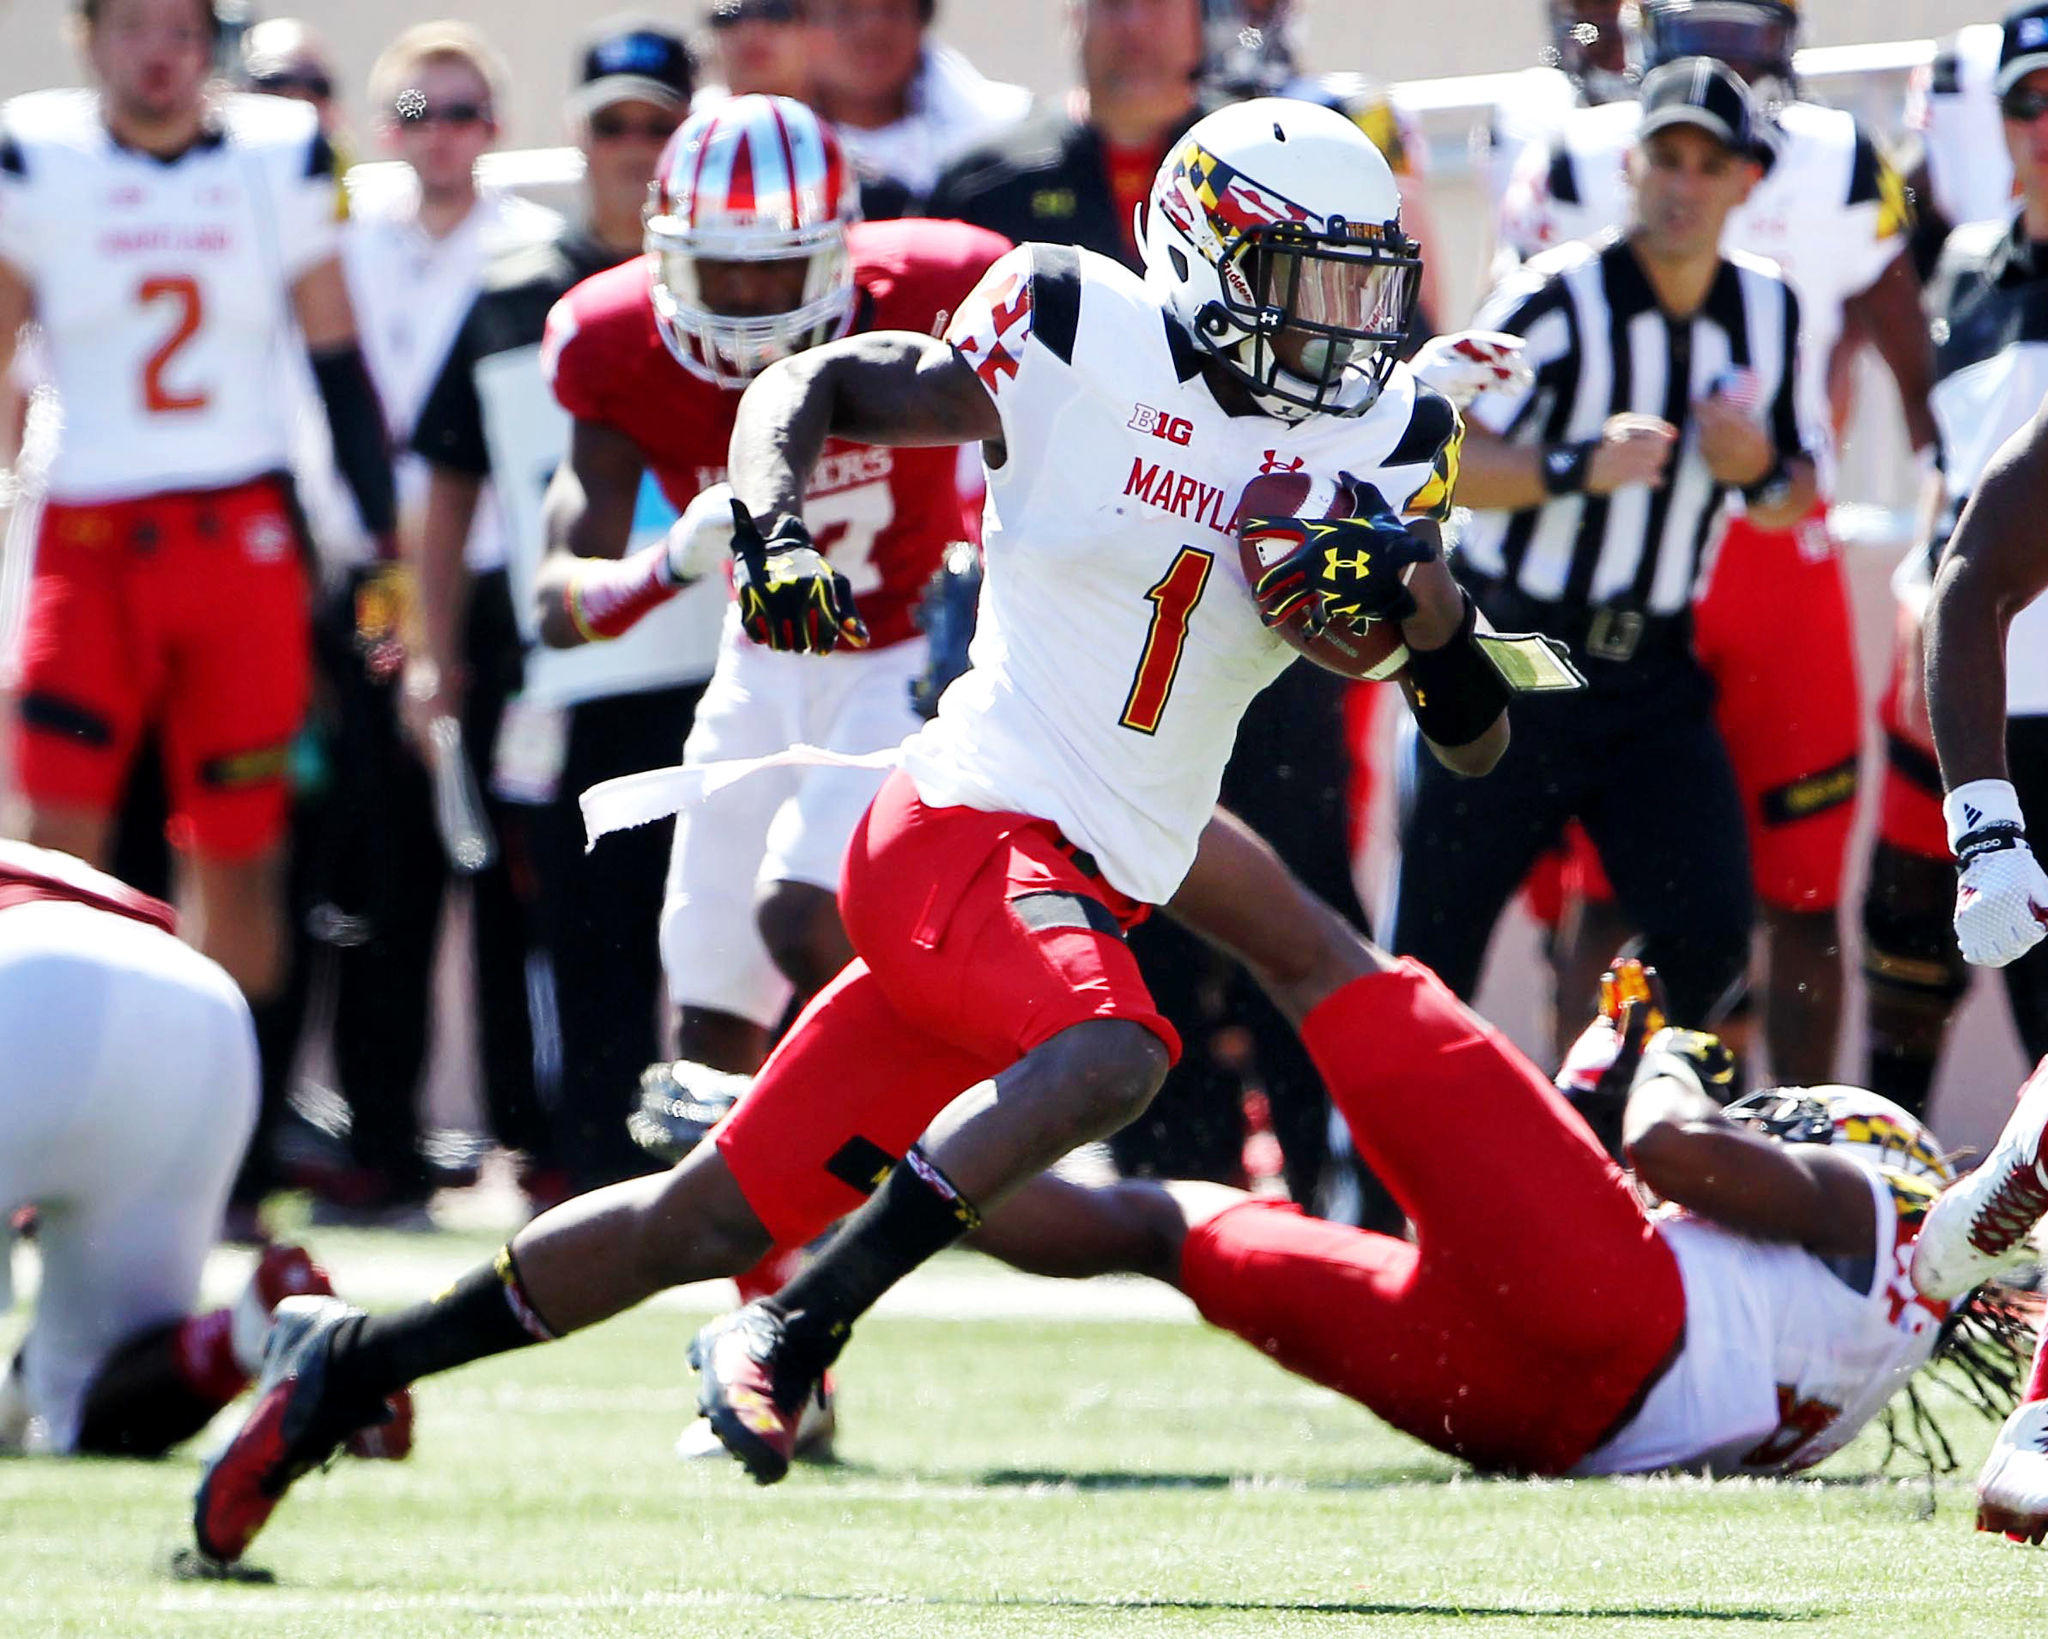 Maryland wide receiver Stefon Diggs runs the ball during the second quarter against the Indiana Hoosiers at Memorial Stadium.